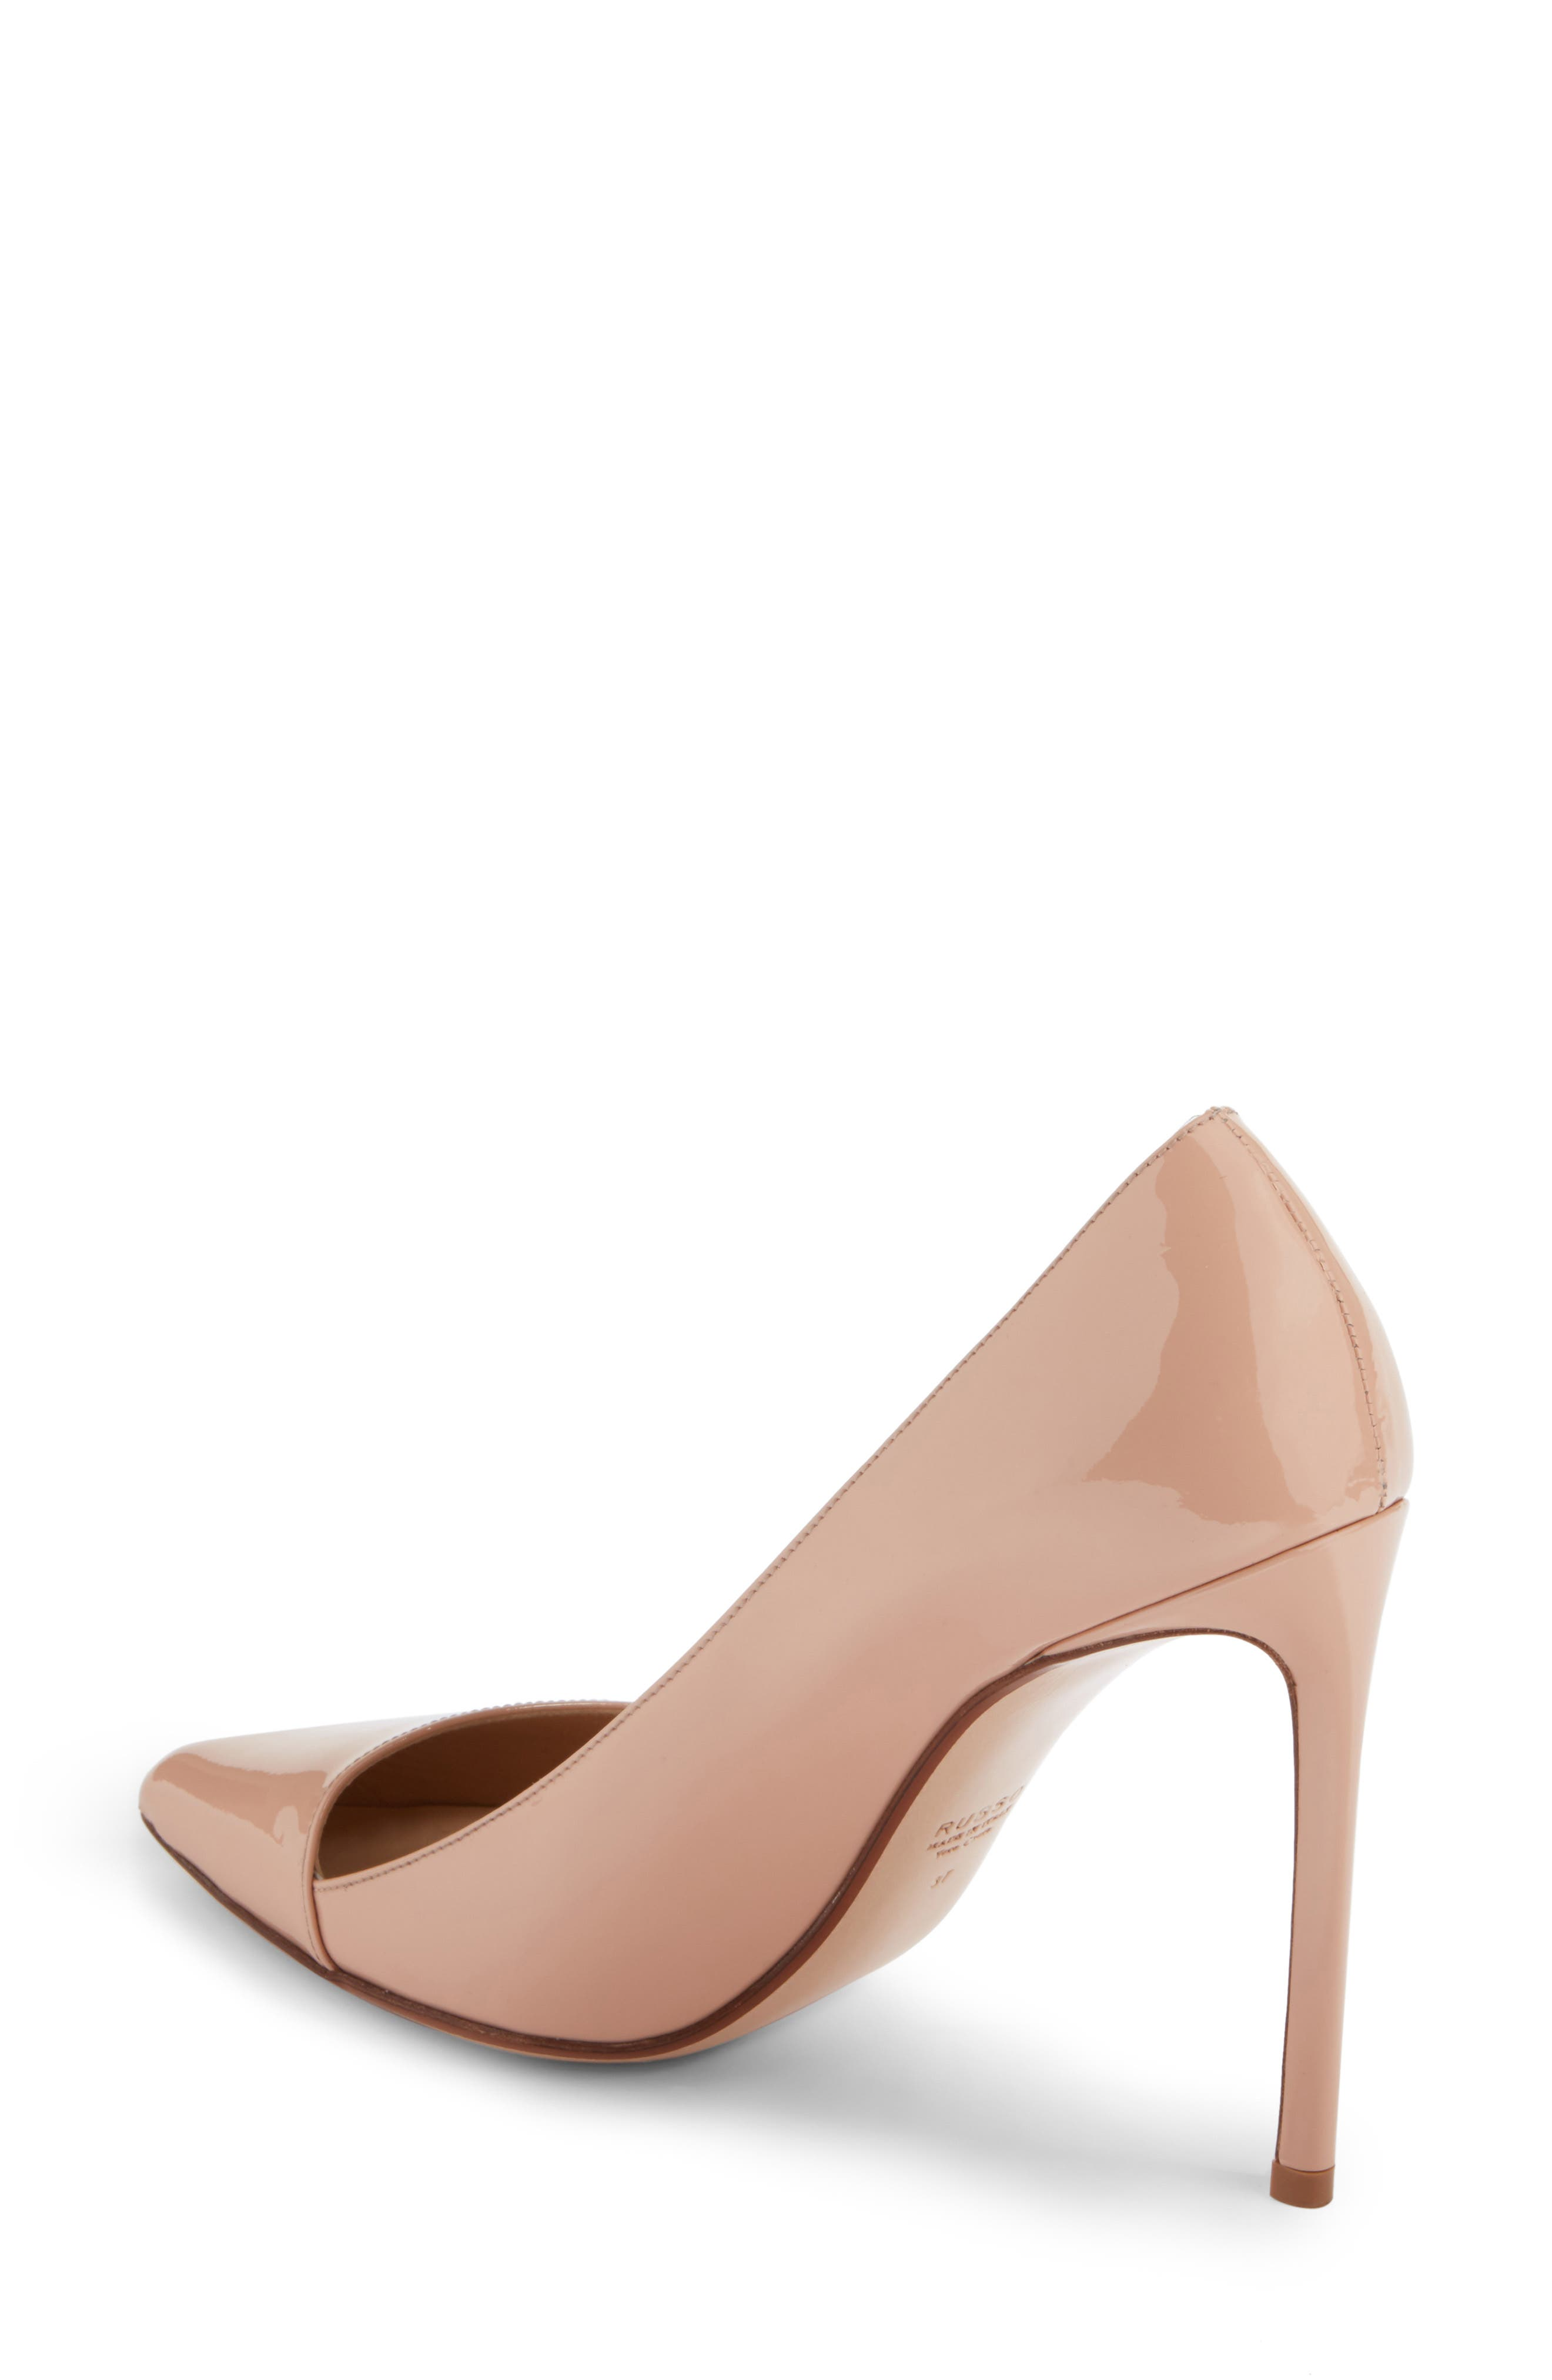 Pointy Toe Pump,                             Alternate thumbnail 2, color,                             250